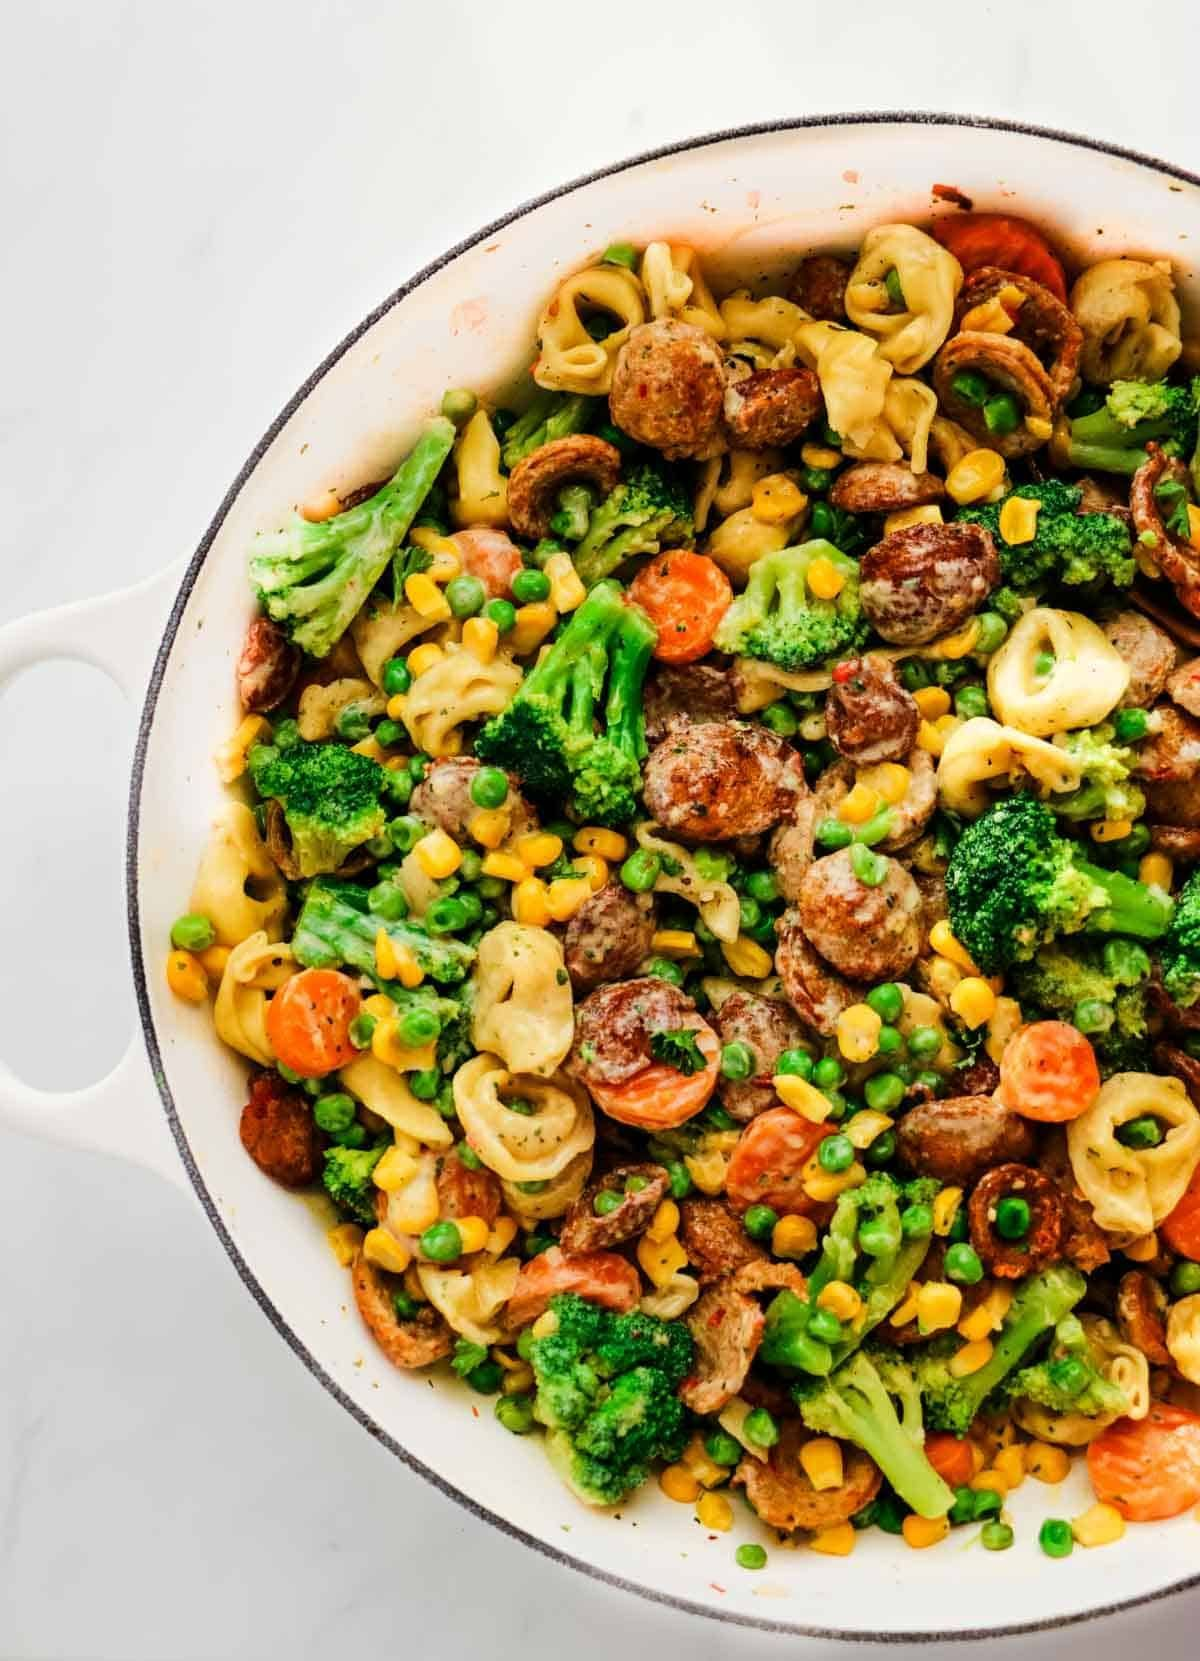 easy chicken recipes for dinner to feed your family? This easy chicken sausage pasta skillet meal is perfect! Just add veggies, tortellini and mix in a creamy garlic sauce for a crowd-pleasing dinner that can be prepared in under 30 minutes. | via  |